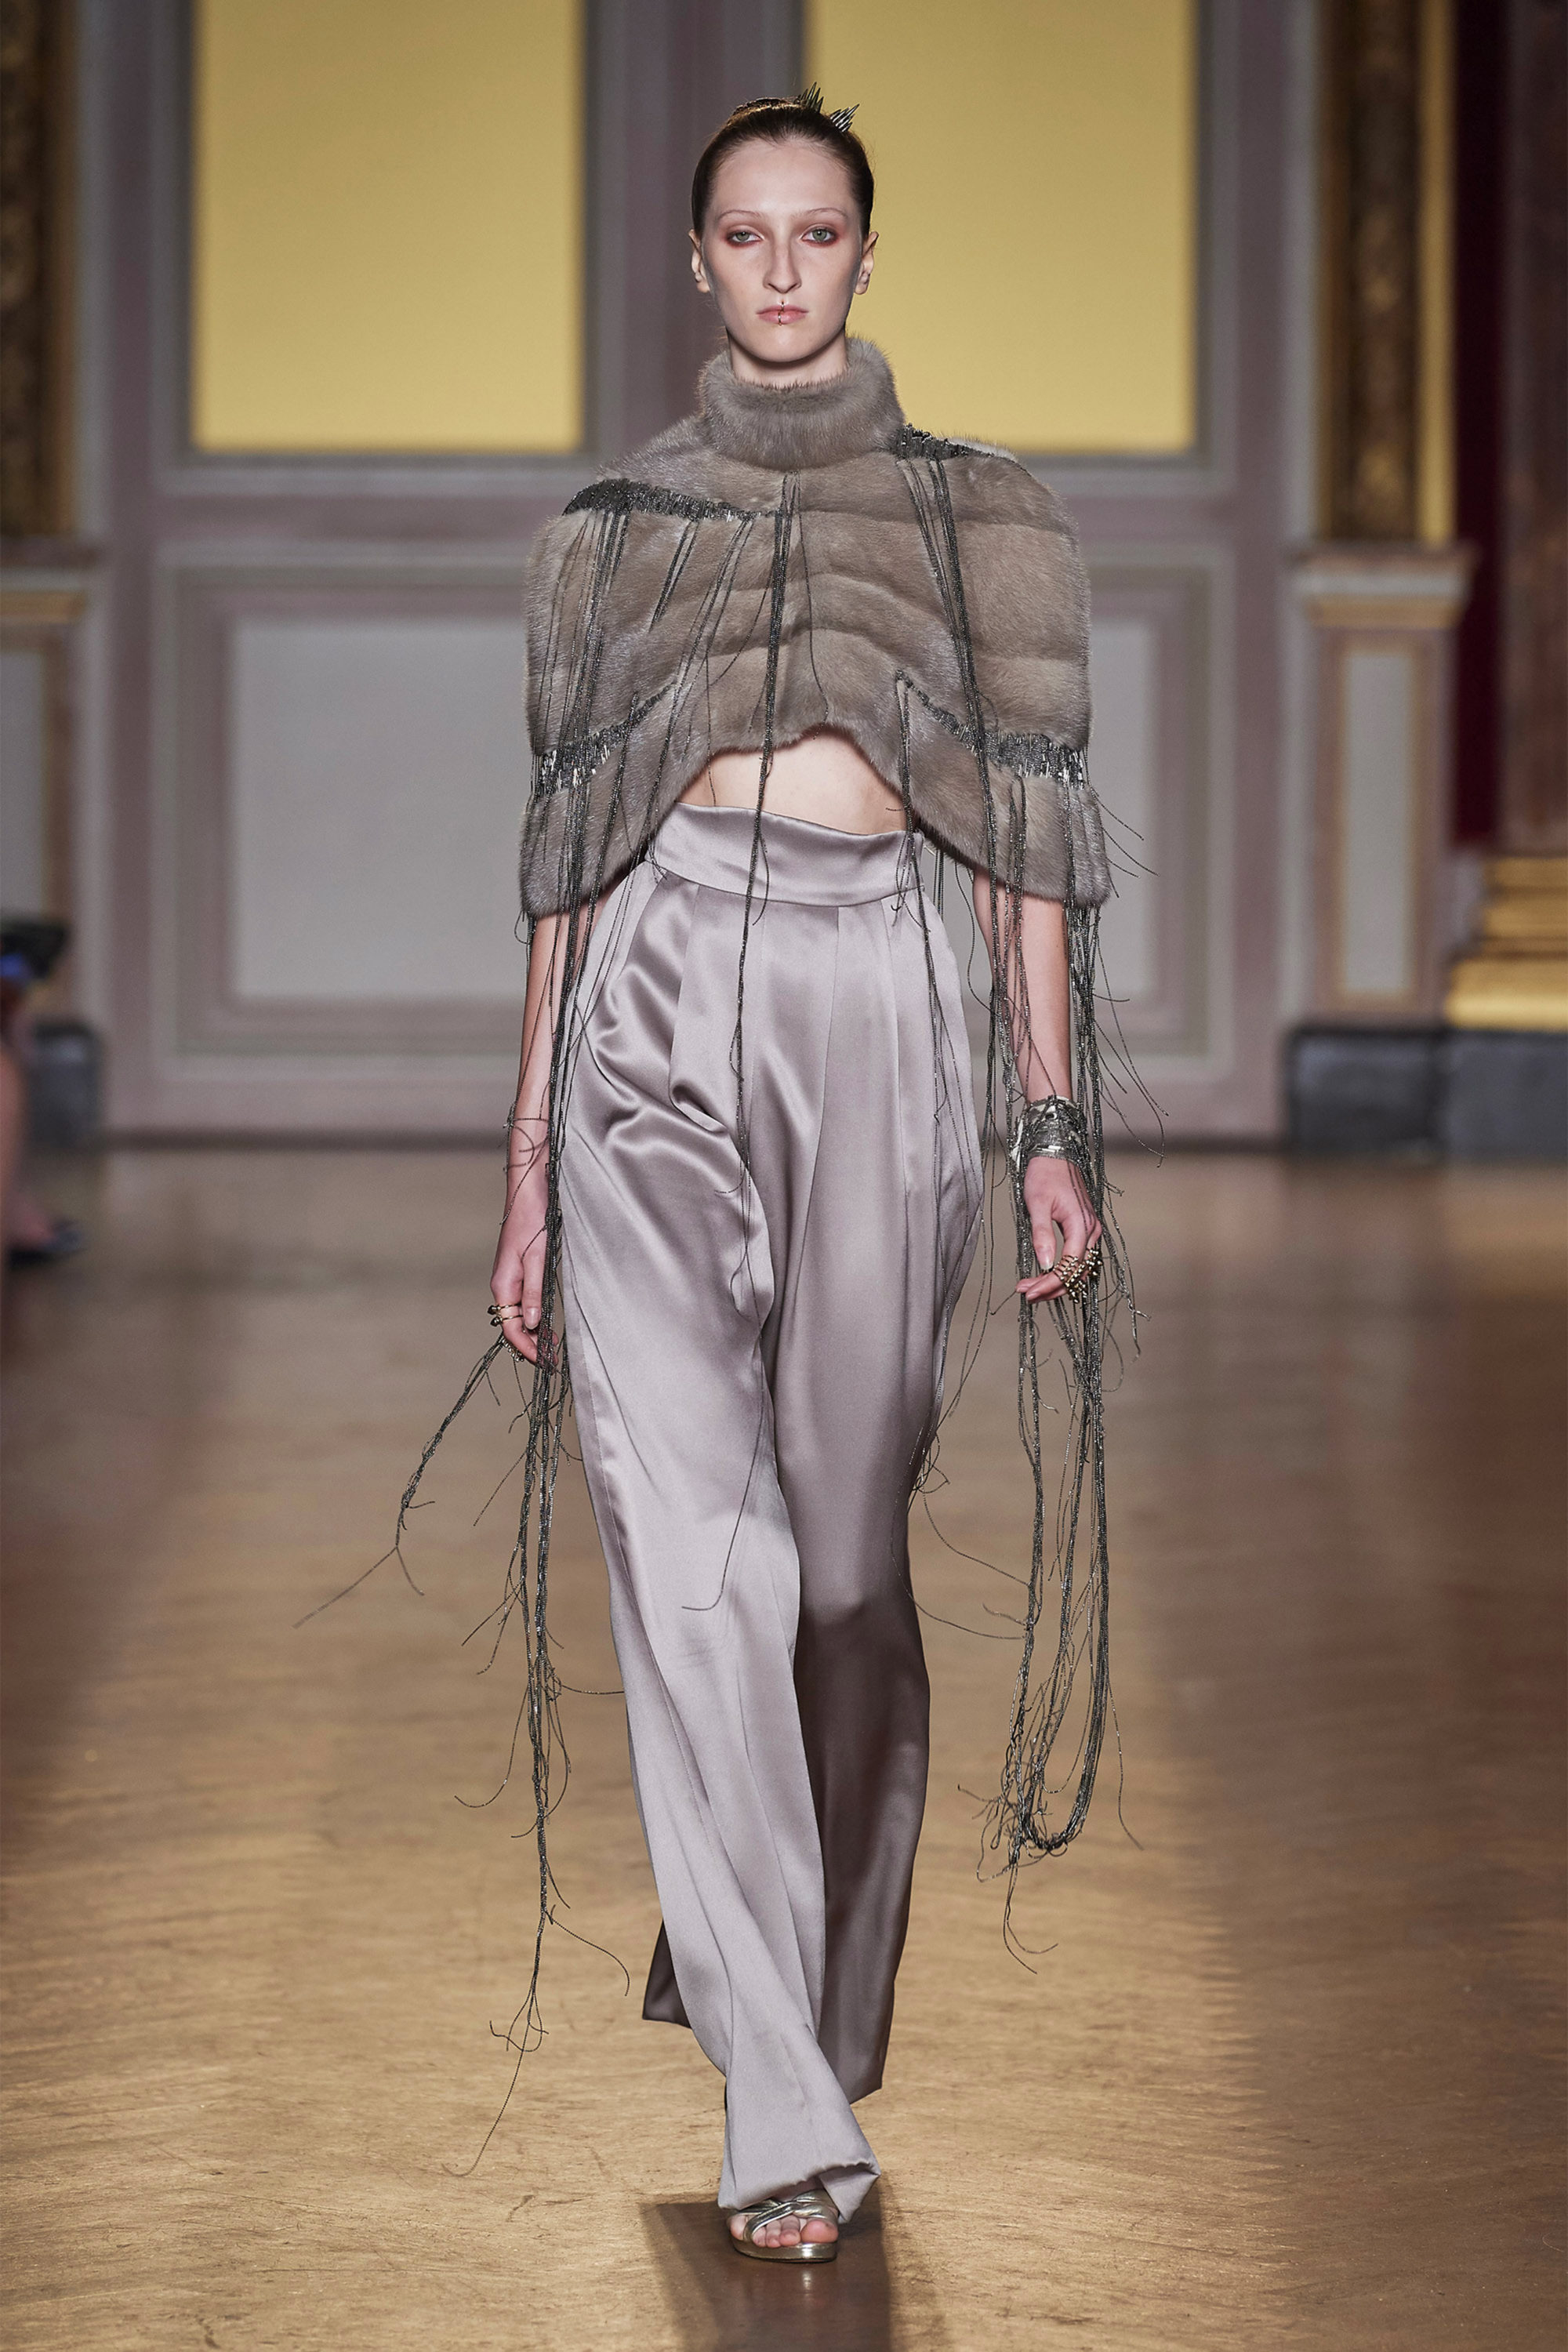 Antonio Grimaldi Couture Fall 2019-2020